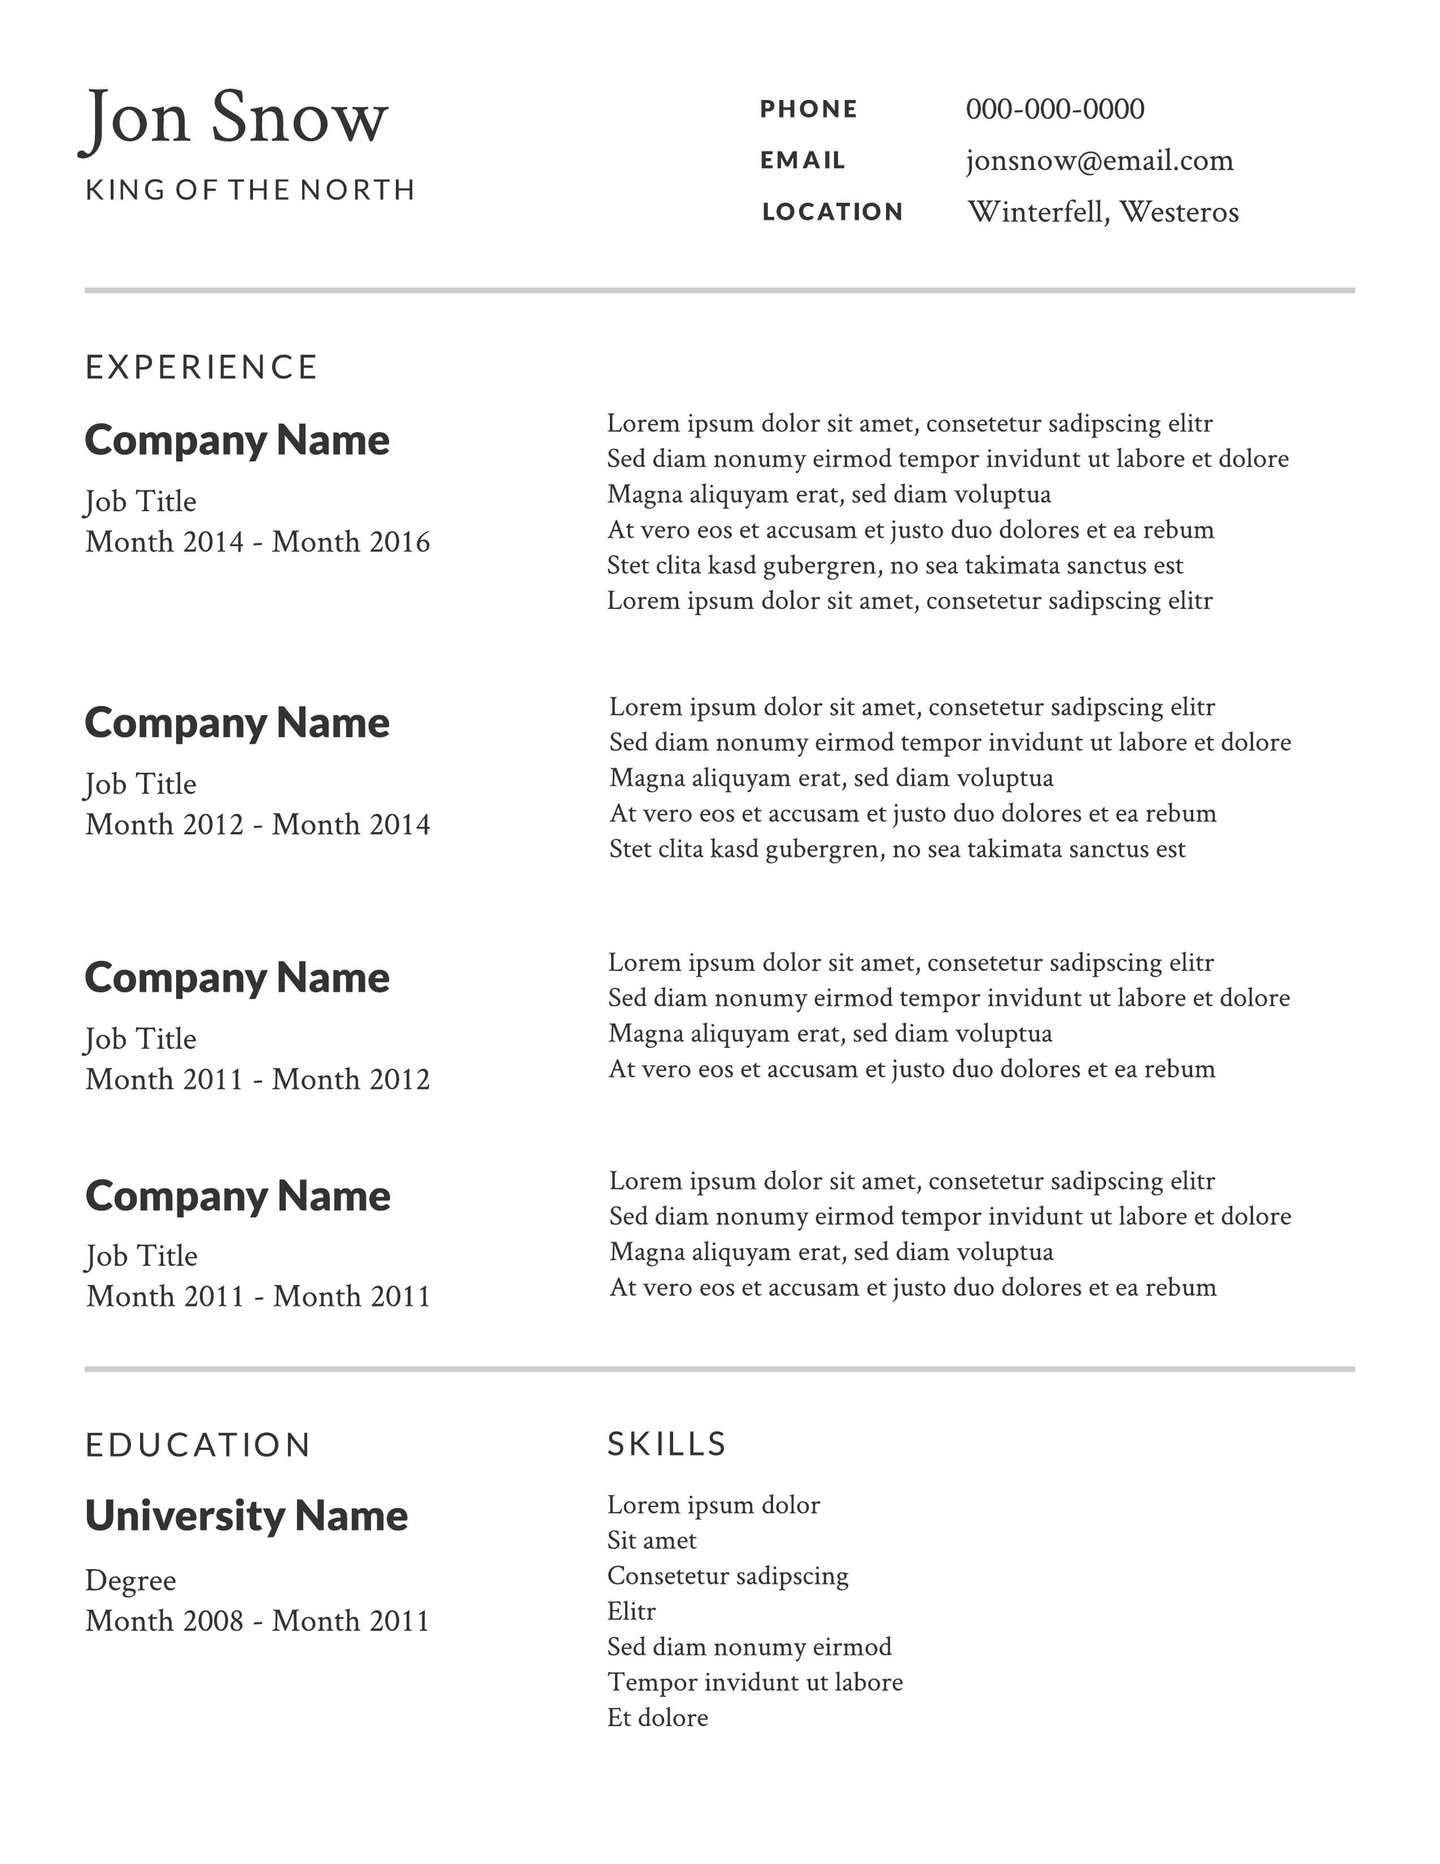 Professional Resume Template | Lucidpress